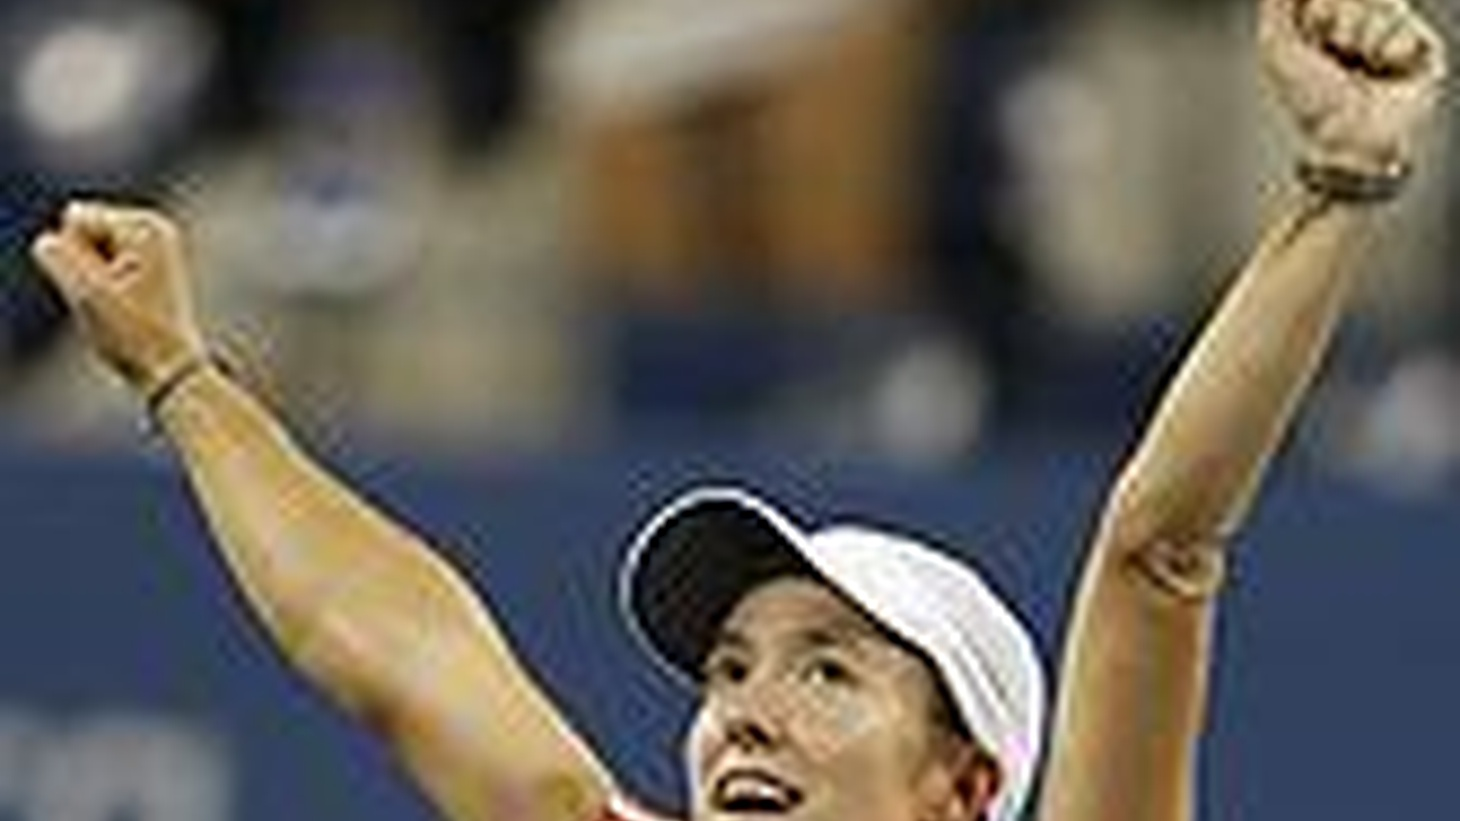 Justine Henin is not only the best woman tennis player in the world at the moment. She may play one of the most well-rounded games of any champion in the sport's history. Before we go any further, however, I can't help but say that it makes me beyond crazy that none of the myriad of tennis announcers can pronounce her name correctly. They go to great lengths to get the Serbian names right. And they're not easy. Djokovic. Ivanovic. I was going to say that they do well with the Russian names as well but the truth is they've got many of those wrong, too...